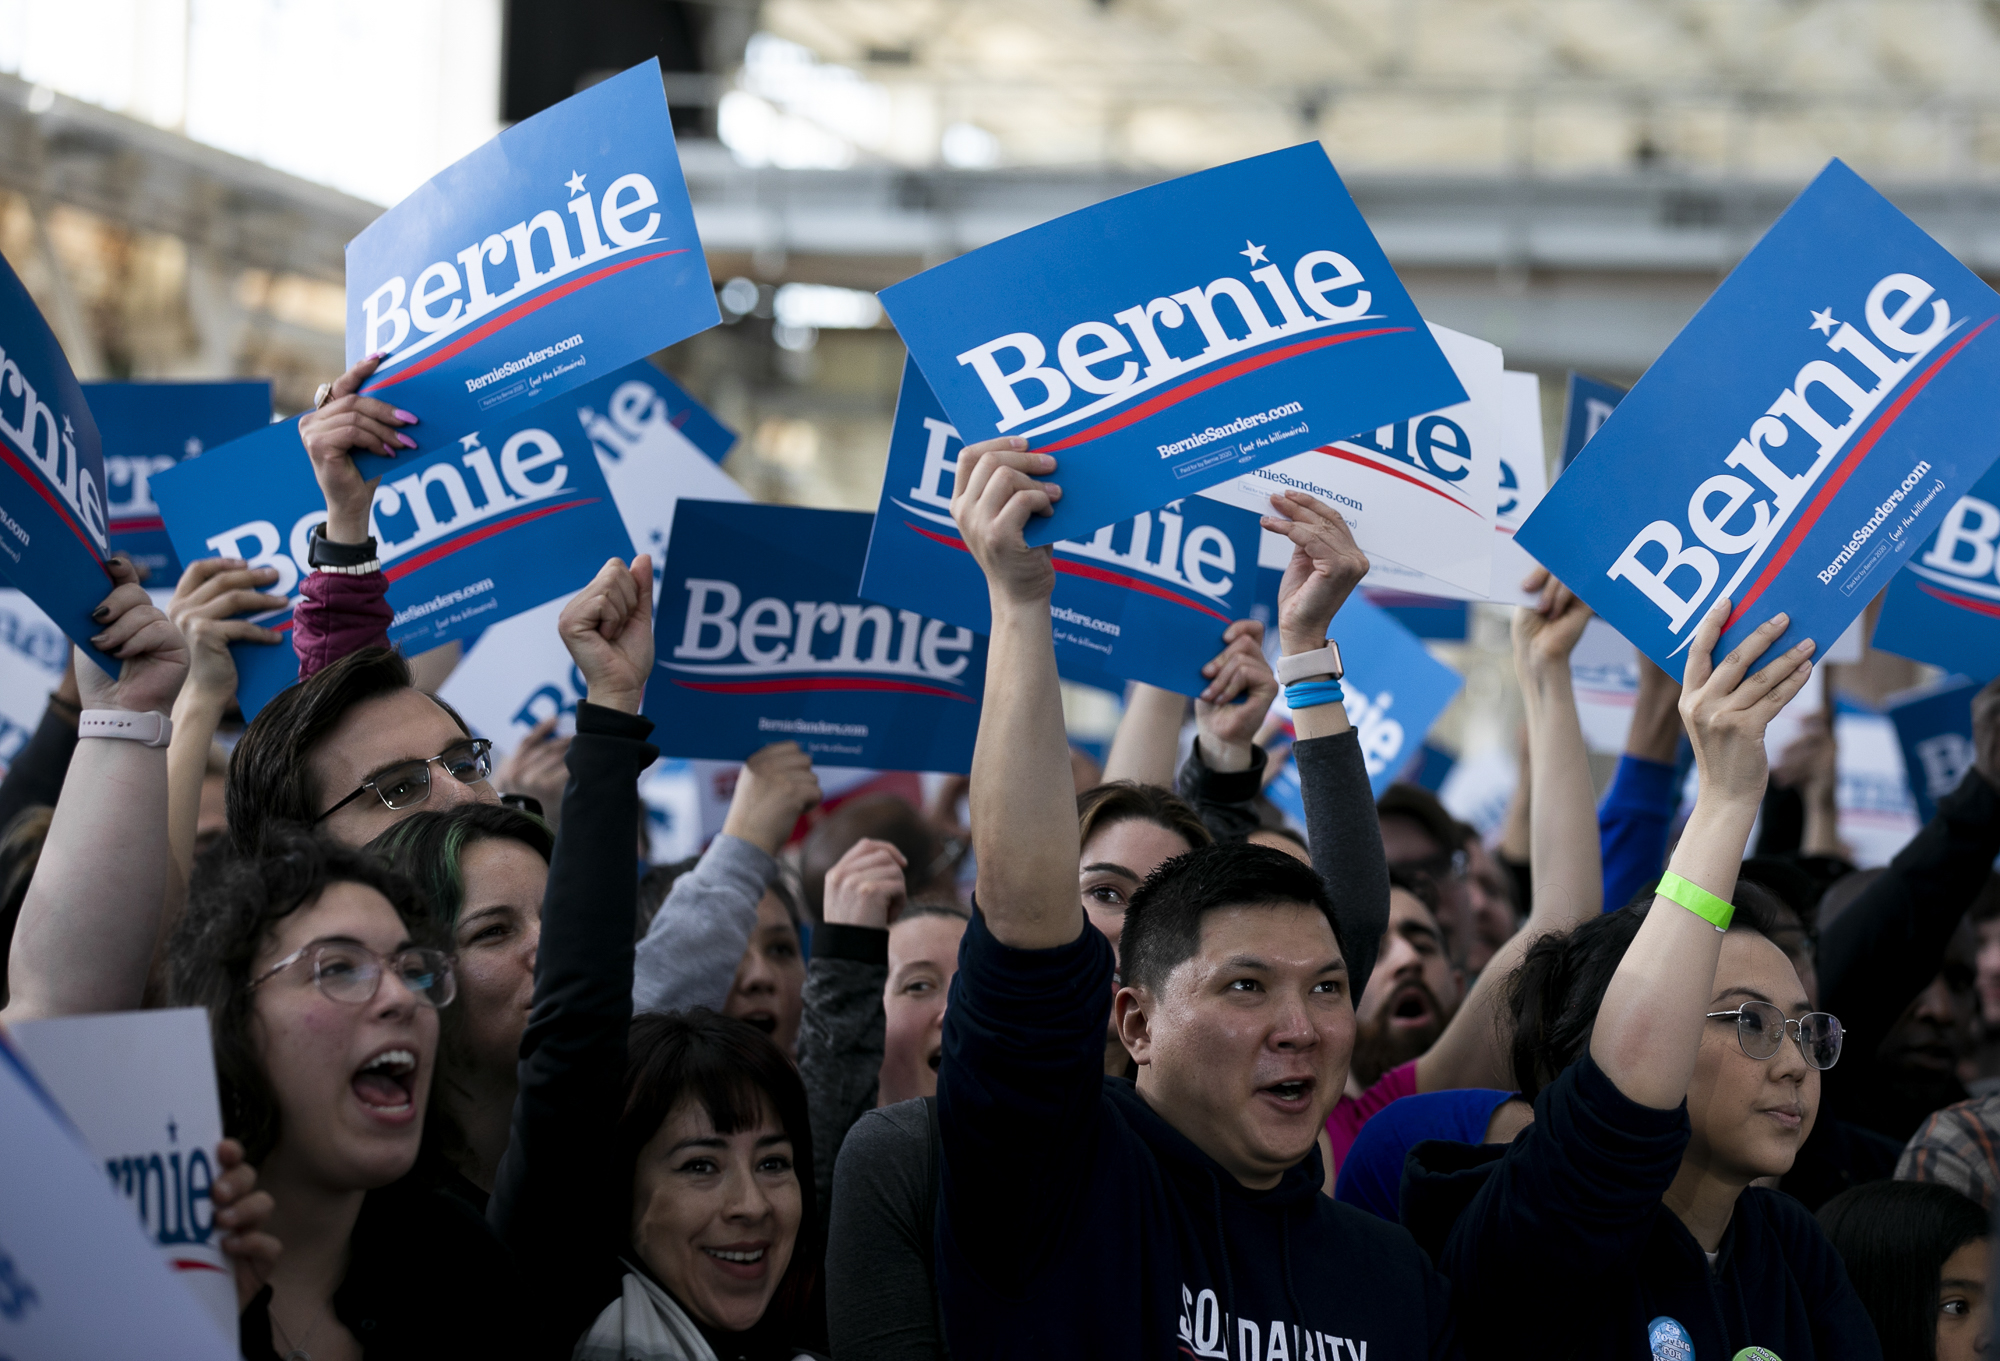 Thousands gathered to support democratic presidential candidate Sen. Bernie Sanders at a campaign rally at Craneway Pavilion in Richmond, CA on February 17, 2020. Photo by Anne Wernikoff for CalMatters